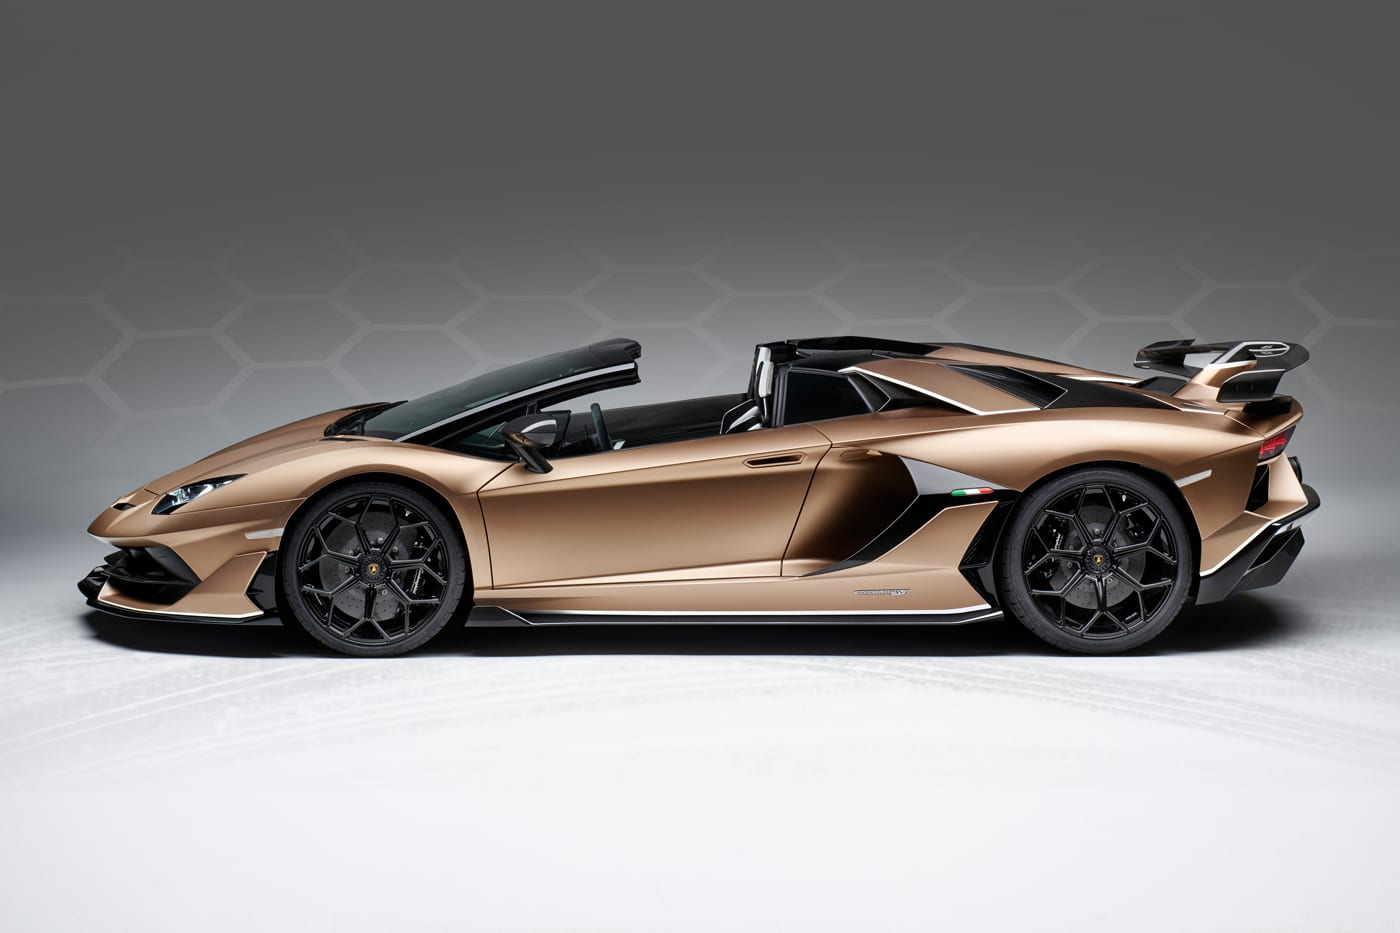 Lamborghini Aventador Svj Roadster Price Specs Photos Review